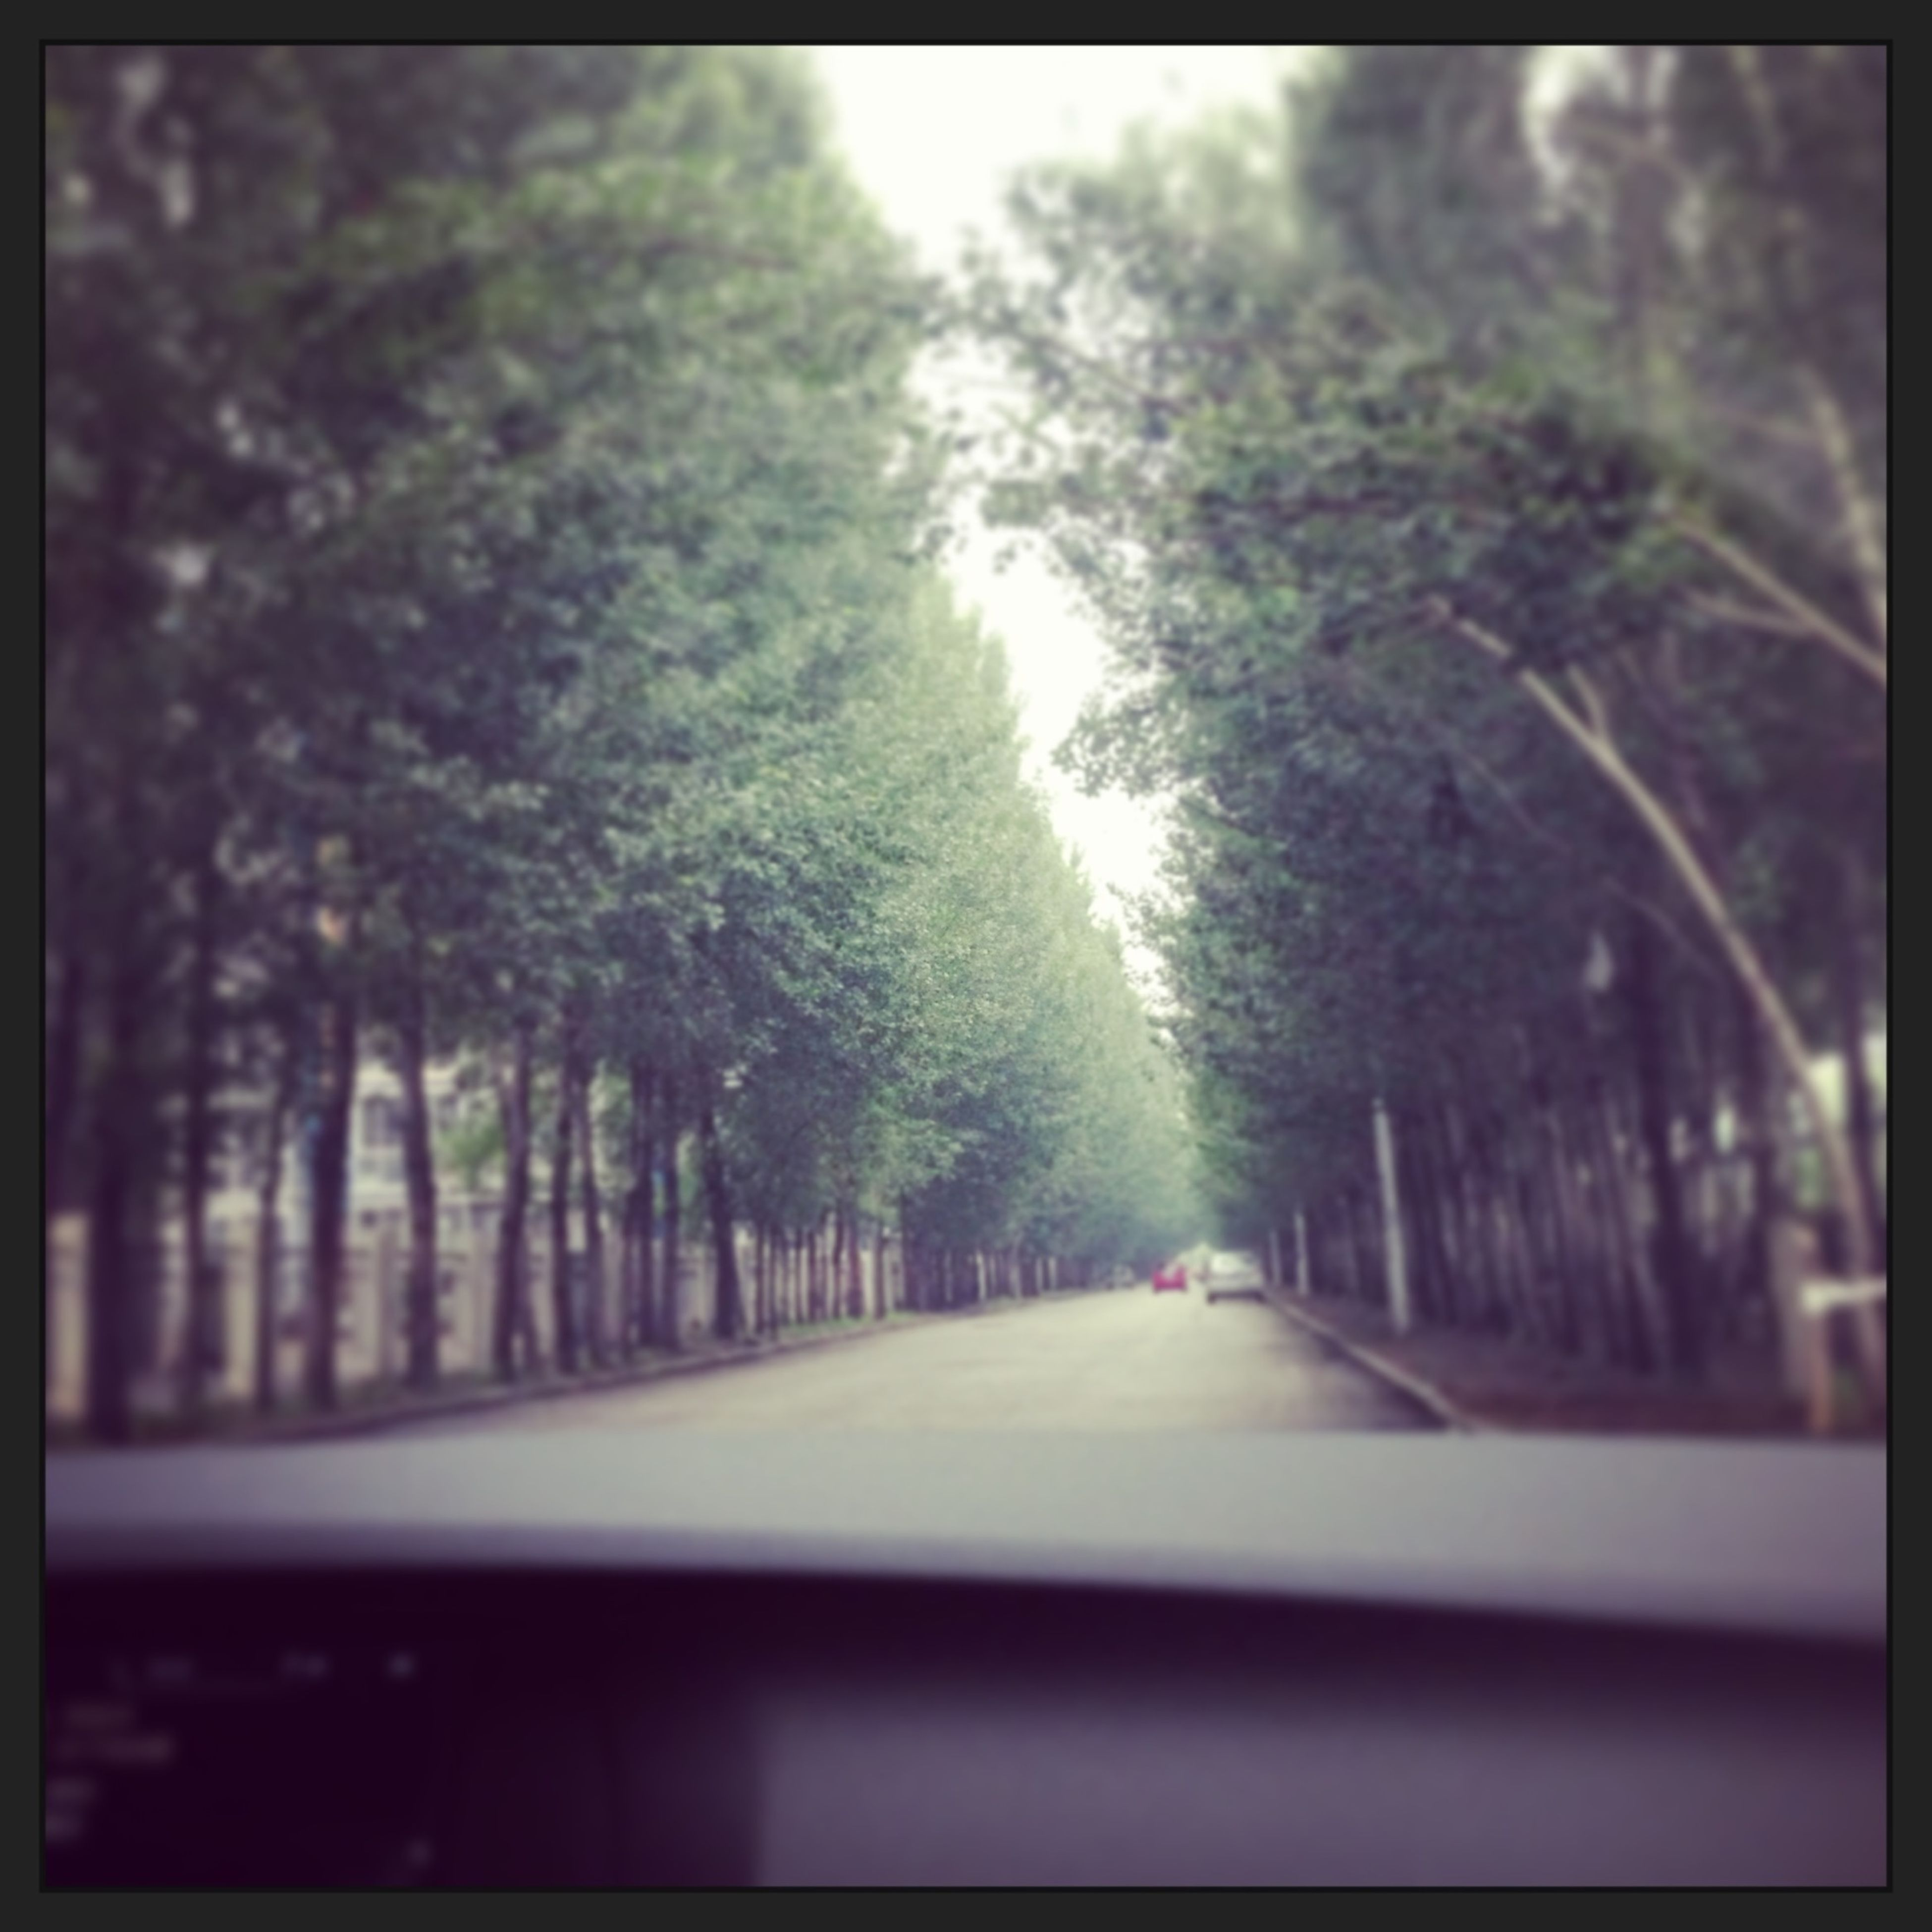 tree, the way forward, diminishing perspective, transportation, road, transfer print, vanishing point, growth, auto post production filter, treelined, street, nature, day, outdoors, long, sunlight, no people, empty, sky, tranquility